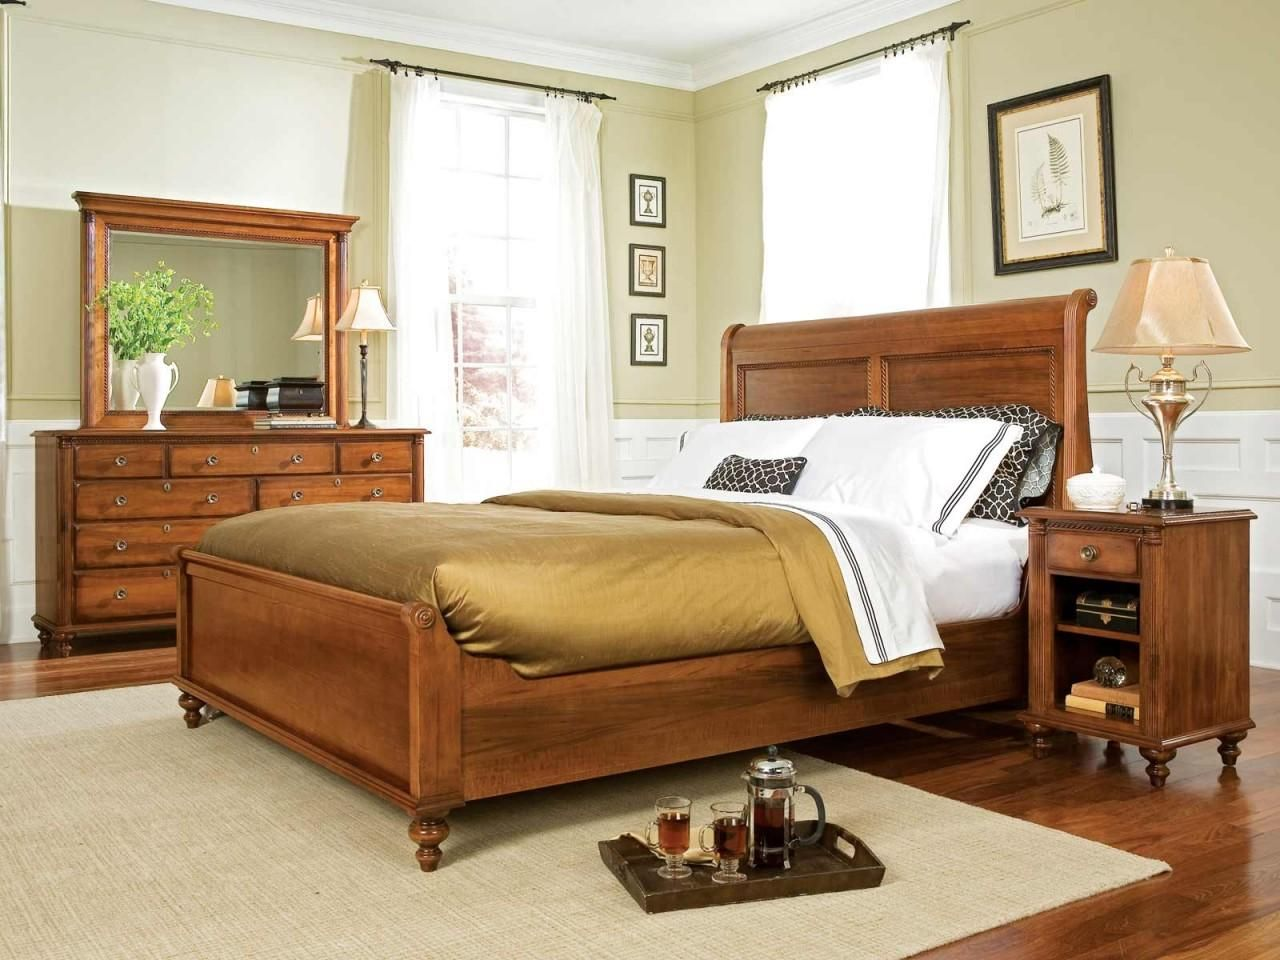 32 Classy Bedroom Furniture Sets Ideas and